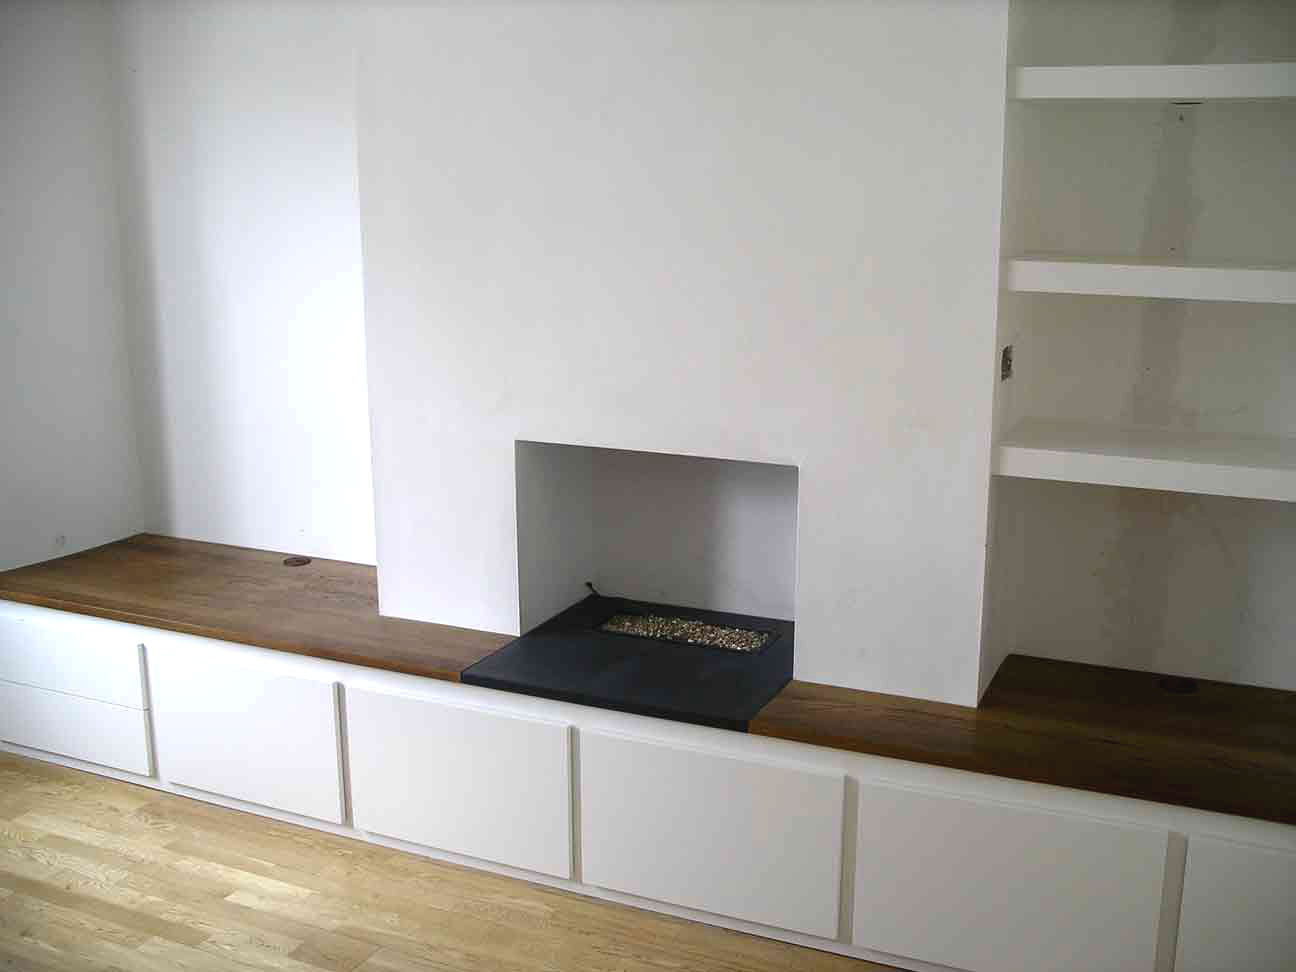 custom built cabinet spans chimney breast and alcoves